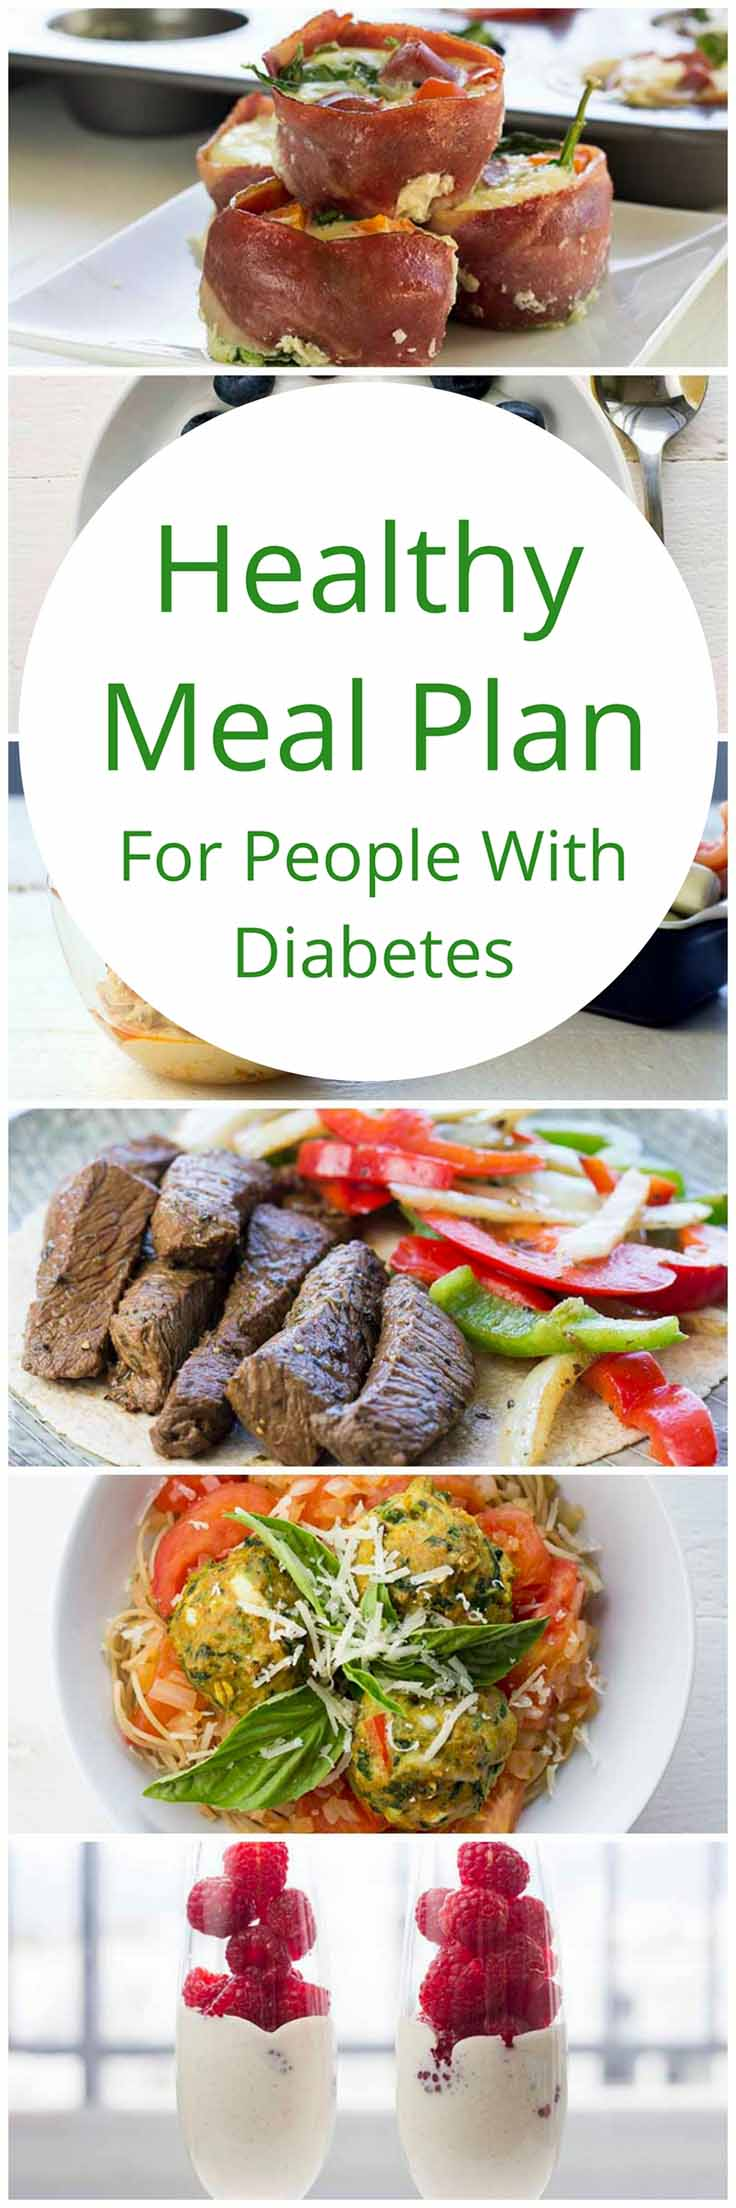 Healthy meal plan for people with diabetes    high protein   low carb   sugar free   gluten free   diabetes friendly   Paleo  